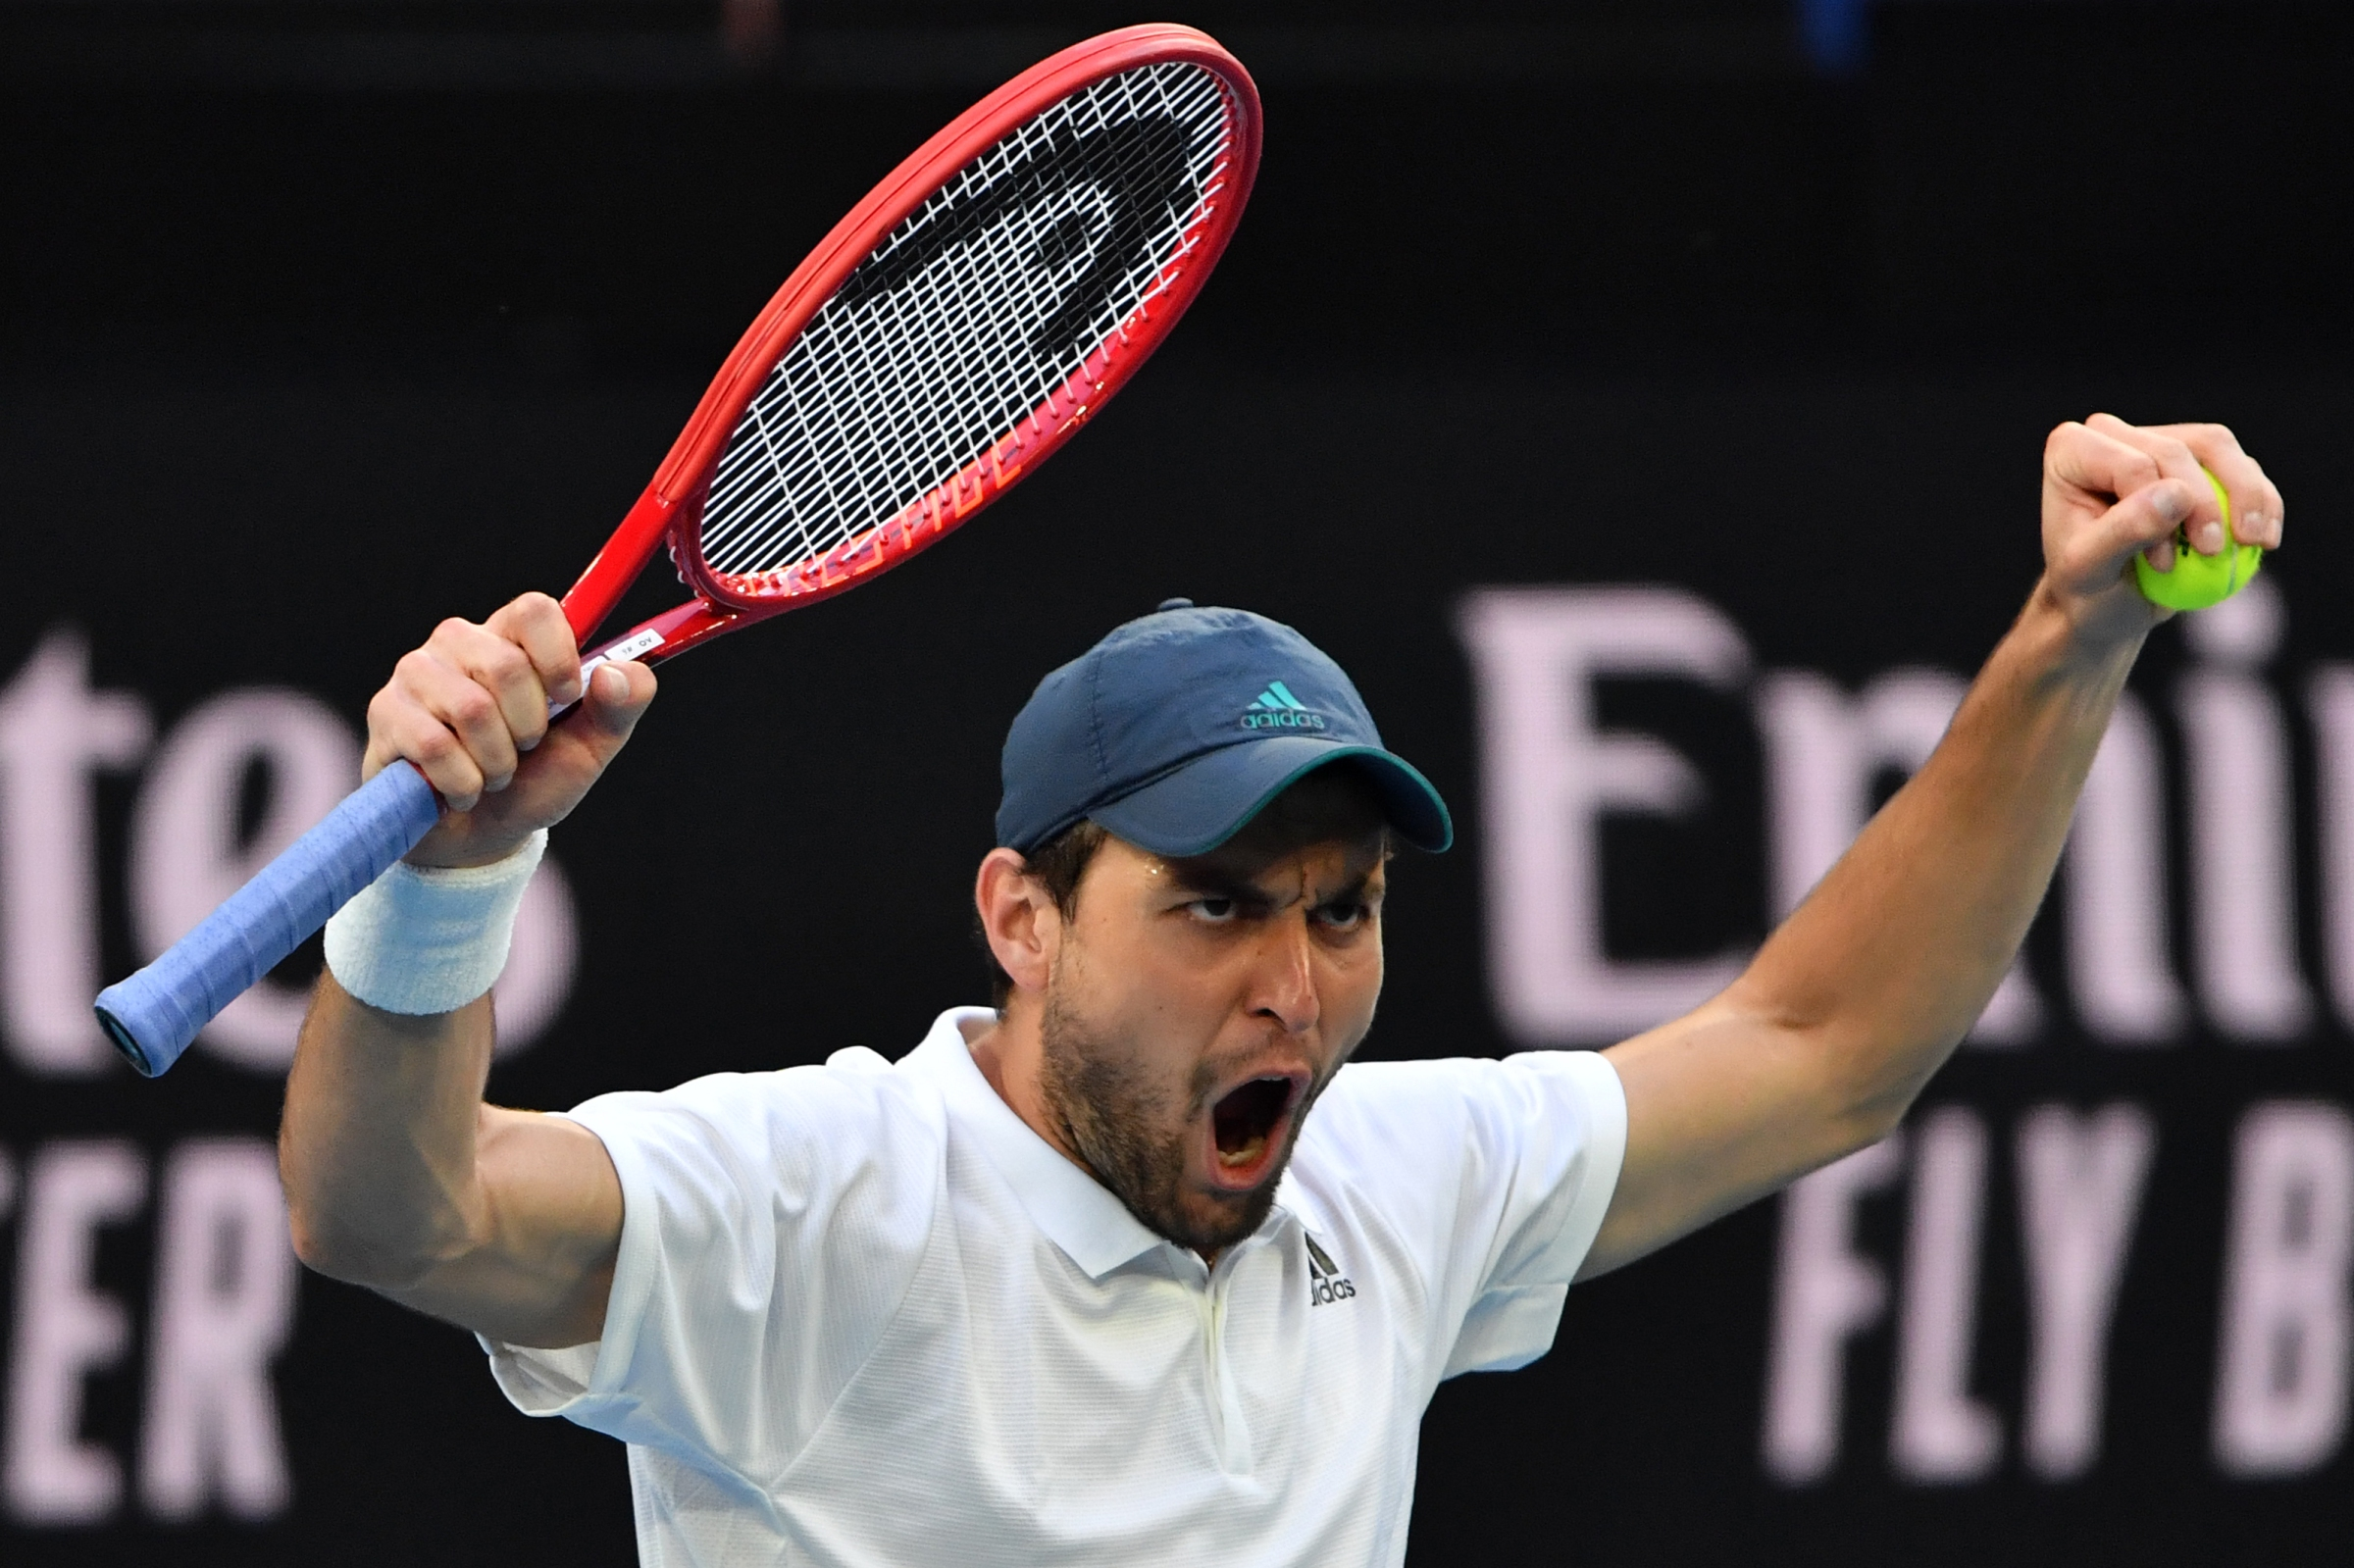 Russia's Aslan Karatsev celebrates after victory against Argentina's Diego Schwartzman during their men's singles match on day five of the Australian Open tennis tournament in Melbourne on February 12, 2021.